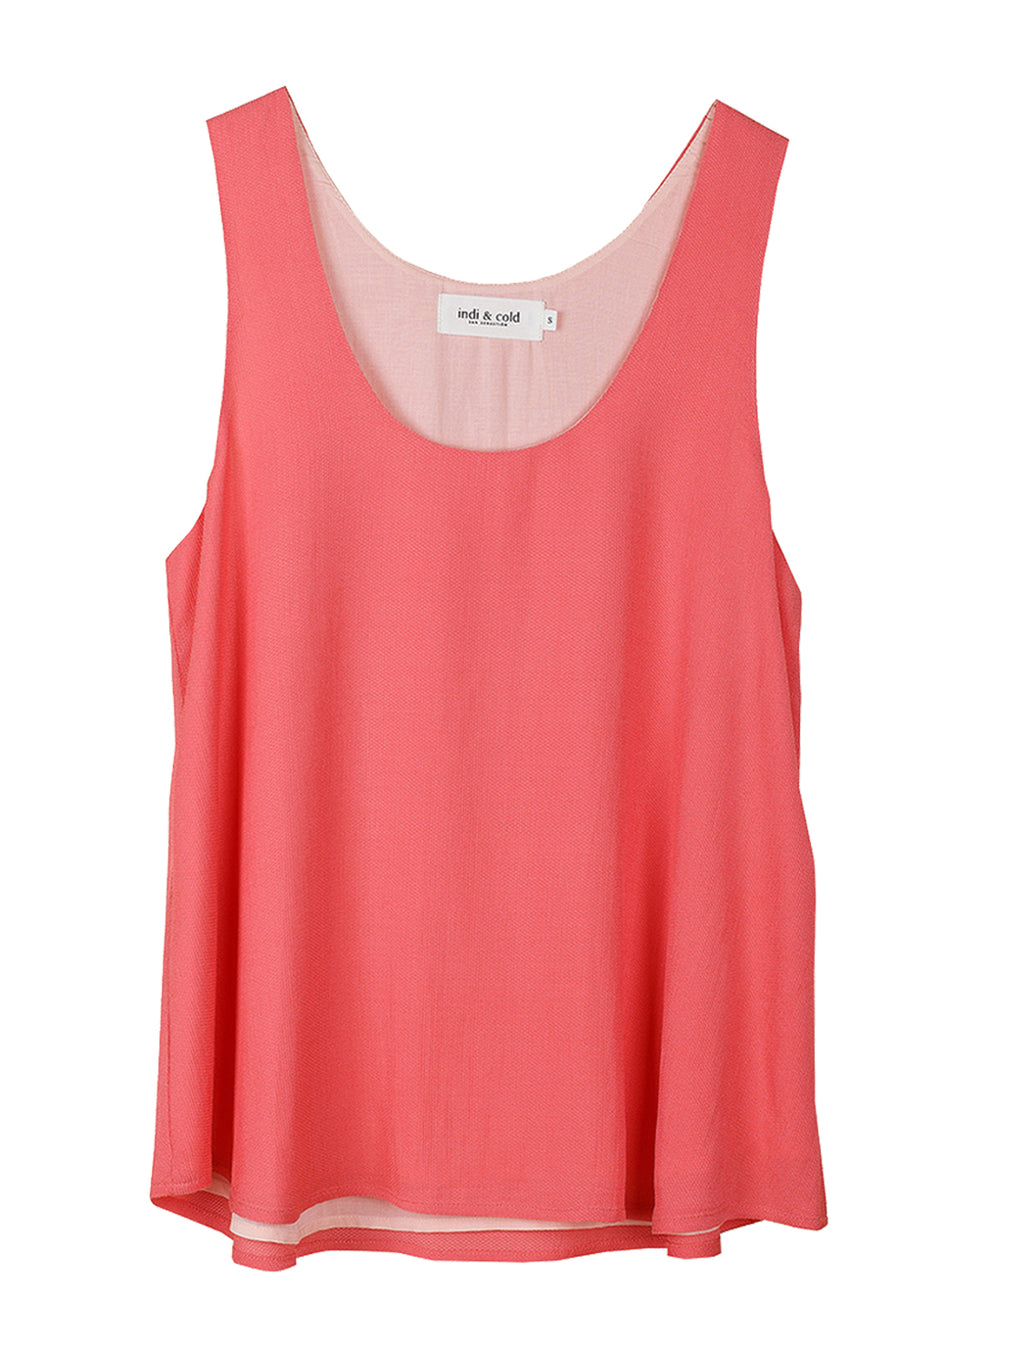 Anais Flair Top - Coral